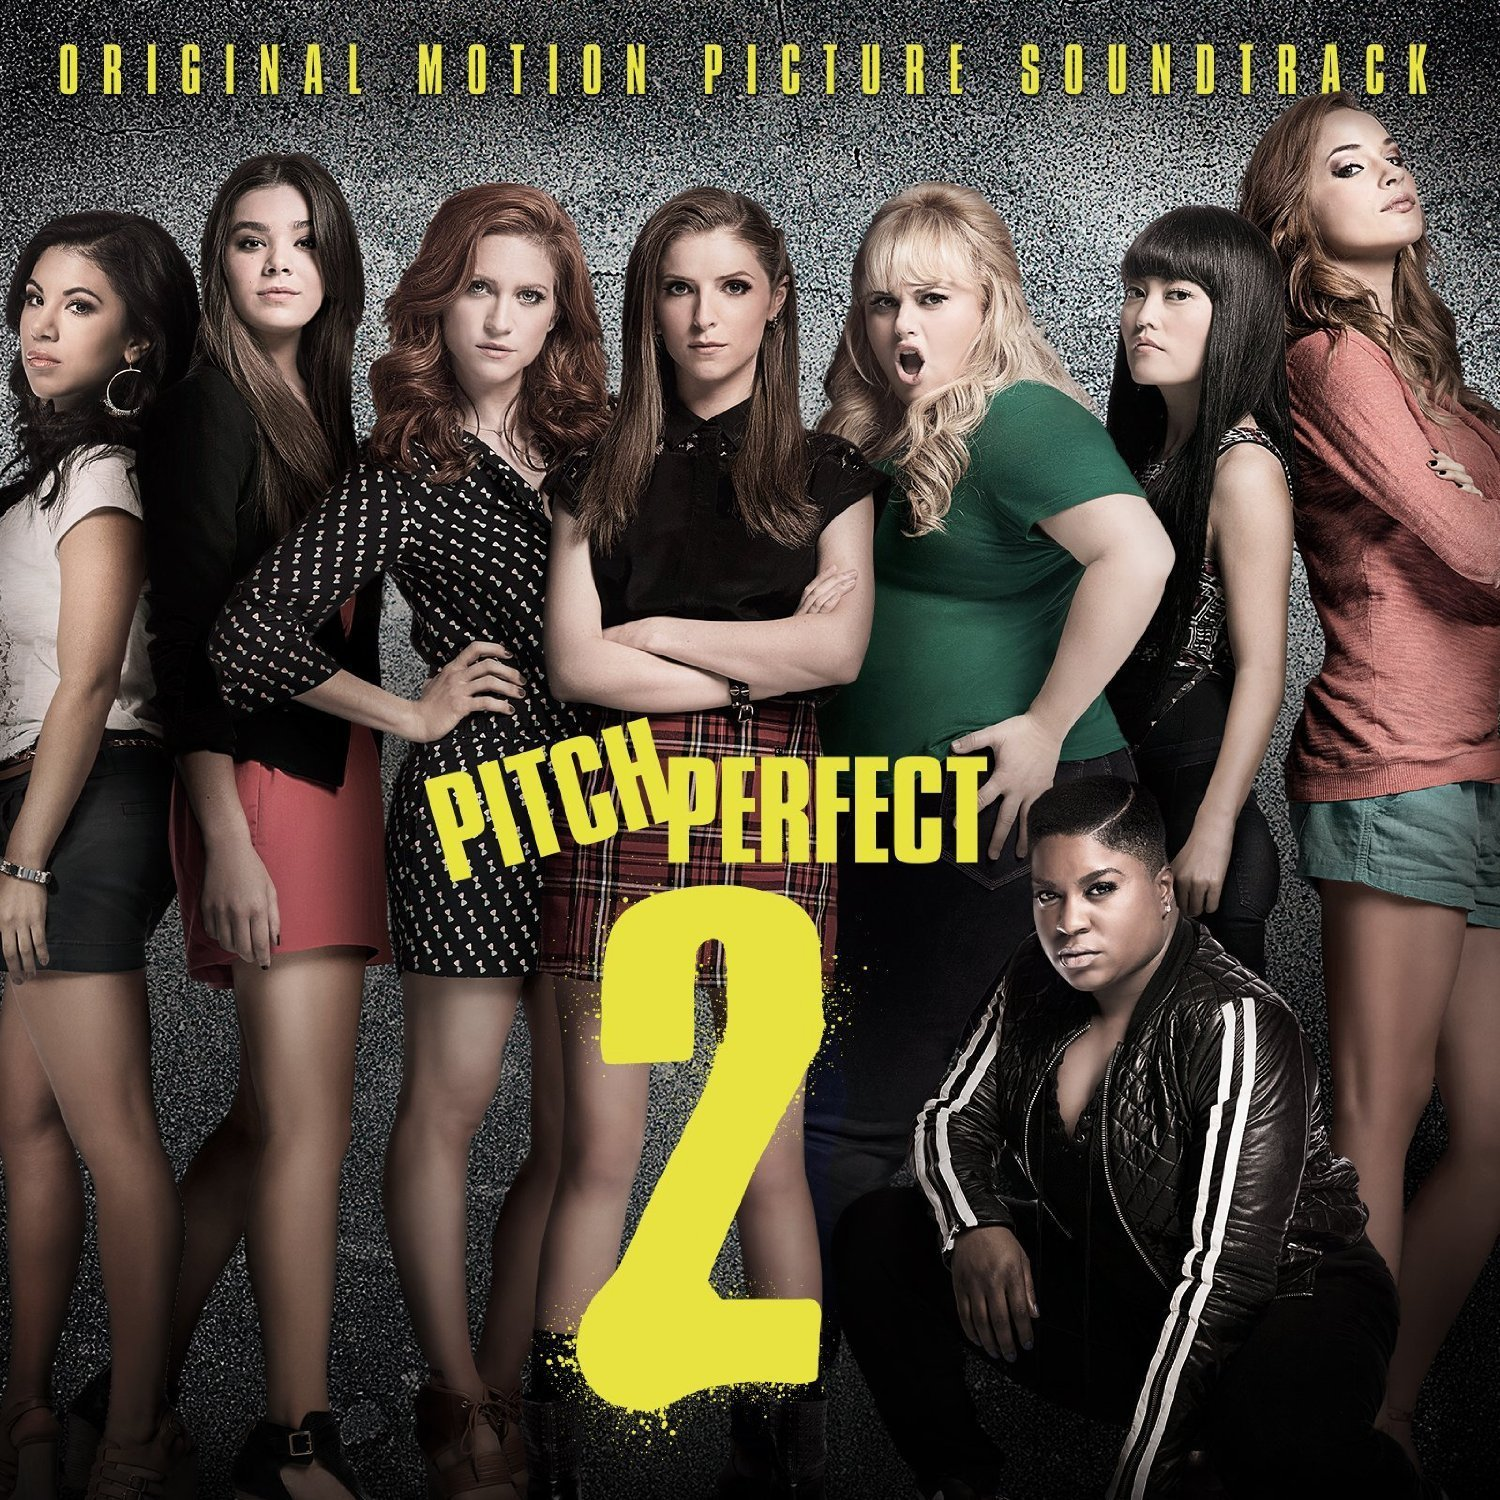 Pitch Perfect 2 by Original Soundtrack image